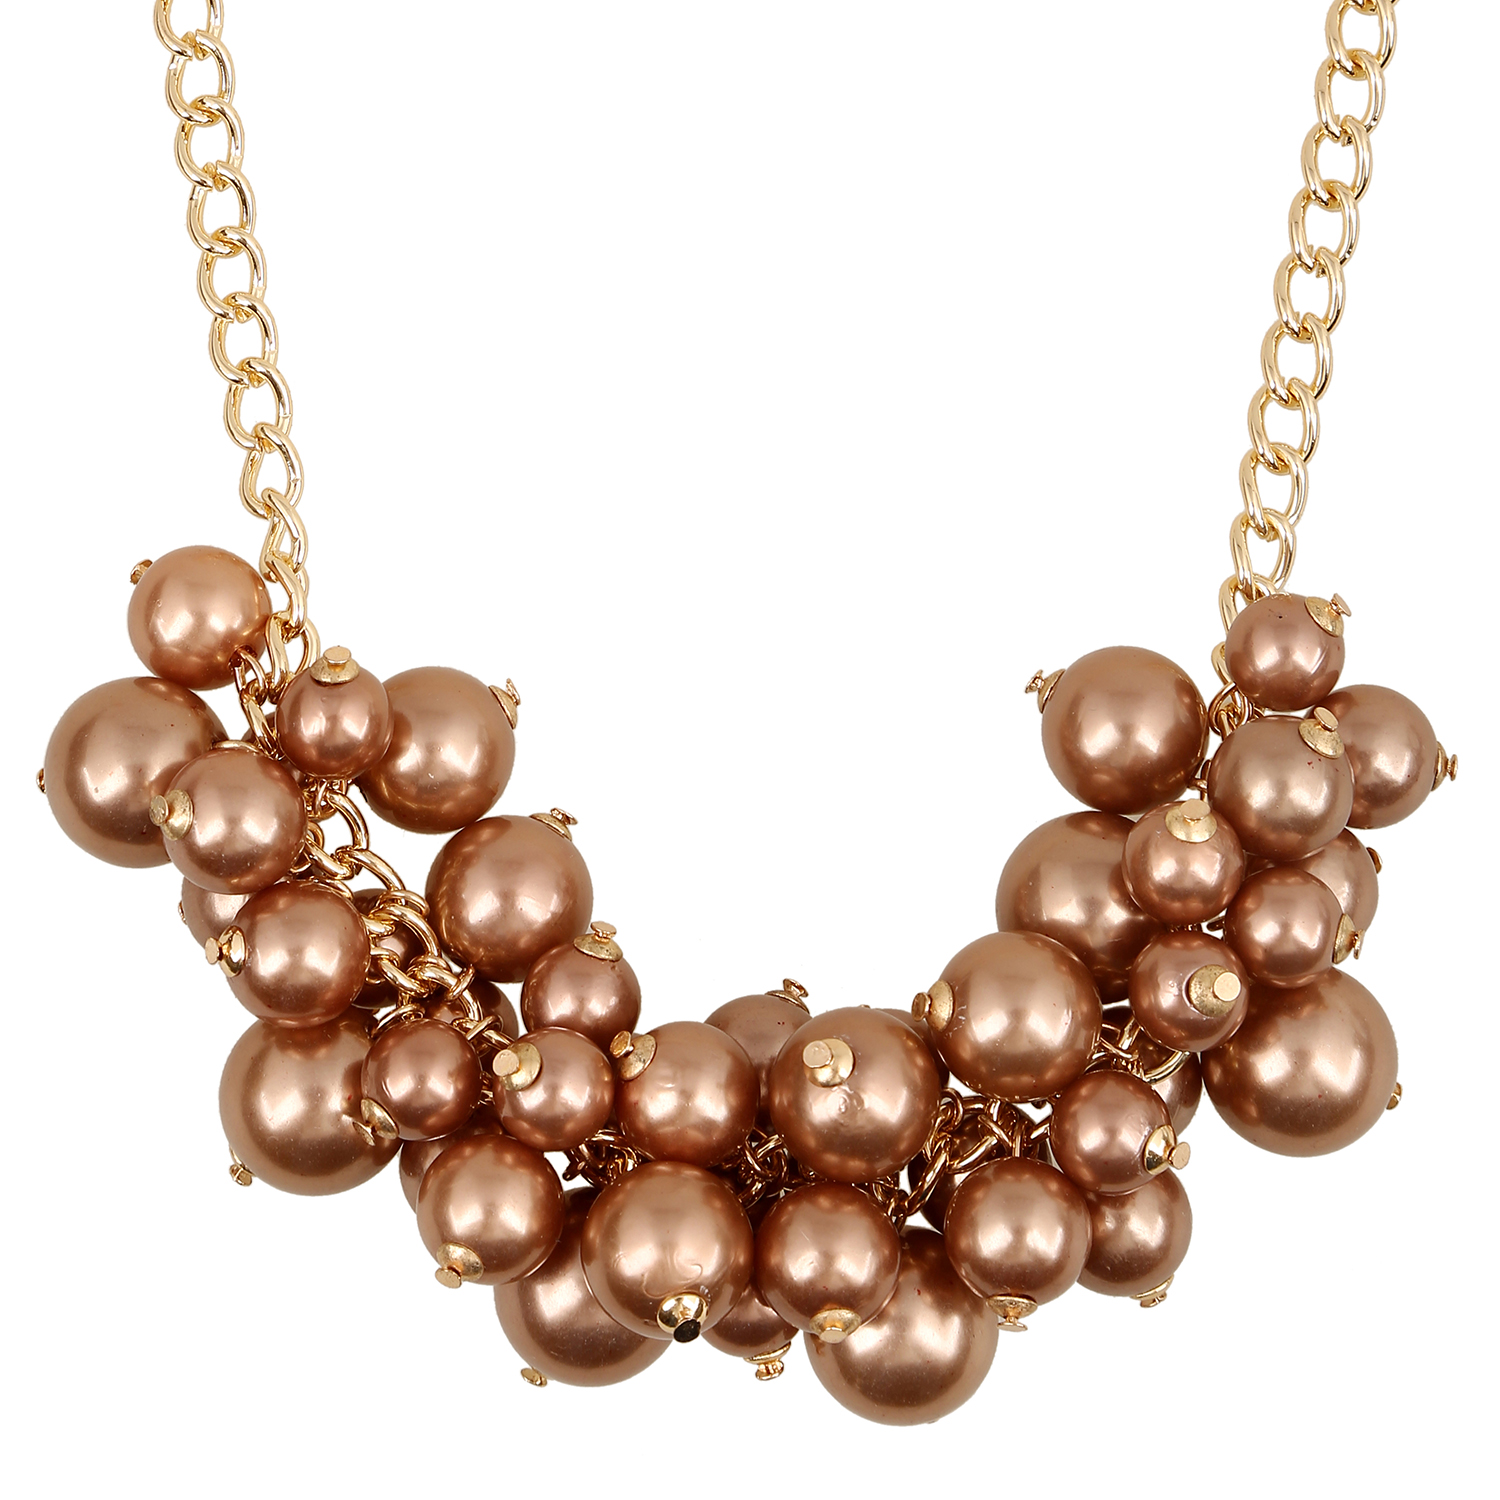 Lureme Europe Style Brown Resin Imitation Pearls Statement Necklaces For  Women Maxi Necklace Wholesale (01003930